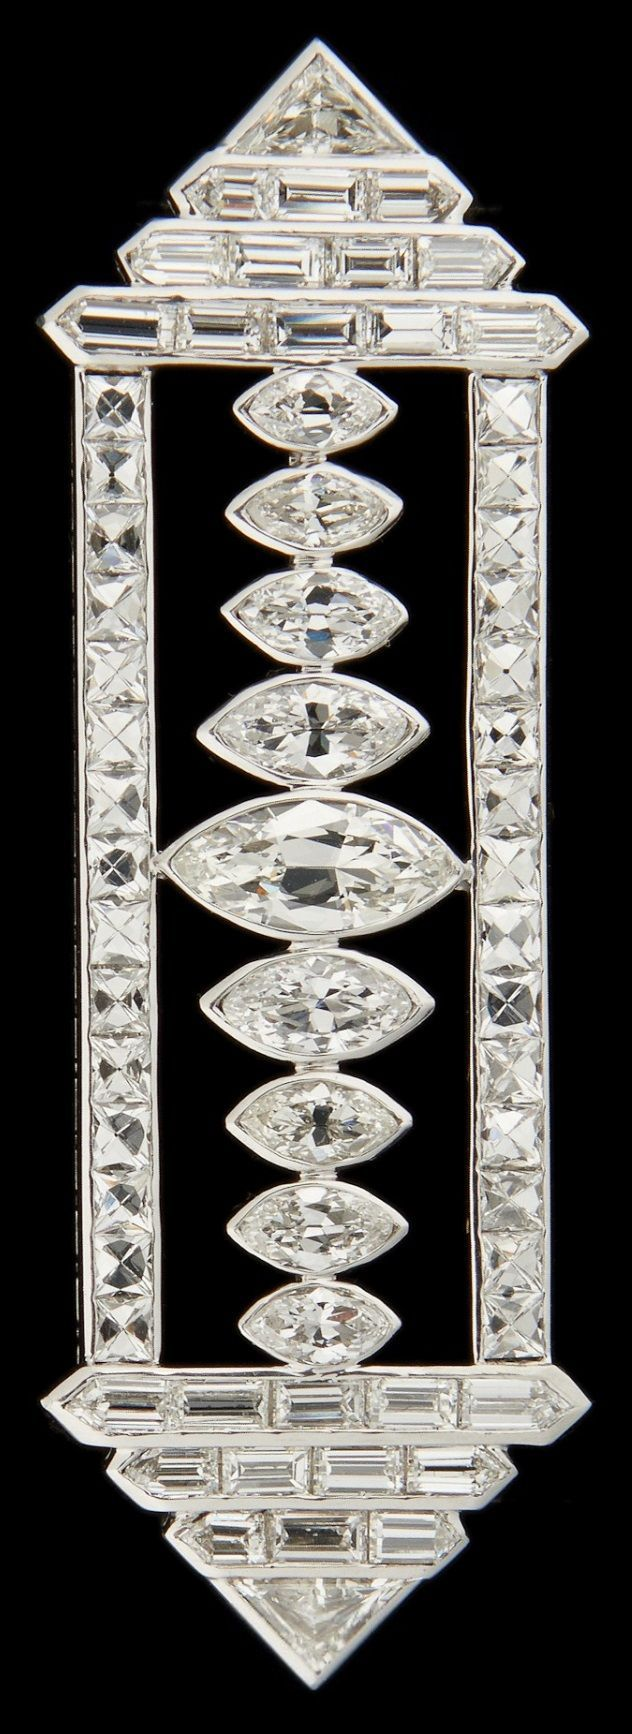 An Art Deco platinum and diamond brooch, set with marquise and calibré diamonds weighing approximately 12 carats. #ArtDeco #brooch